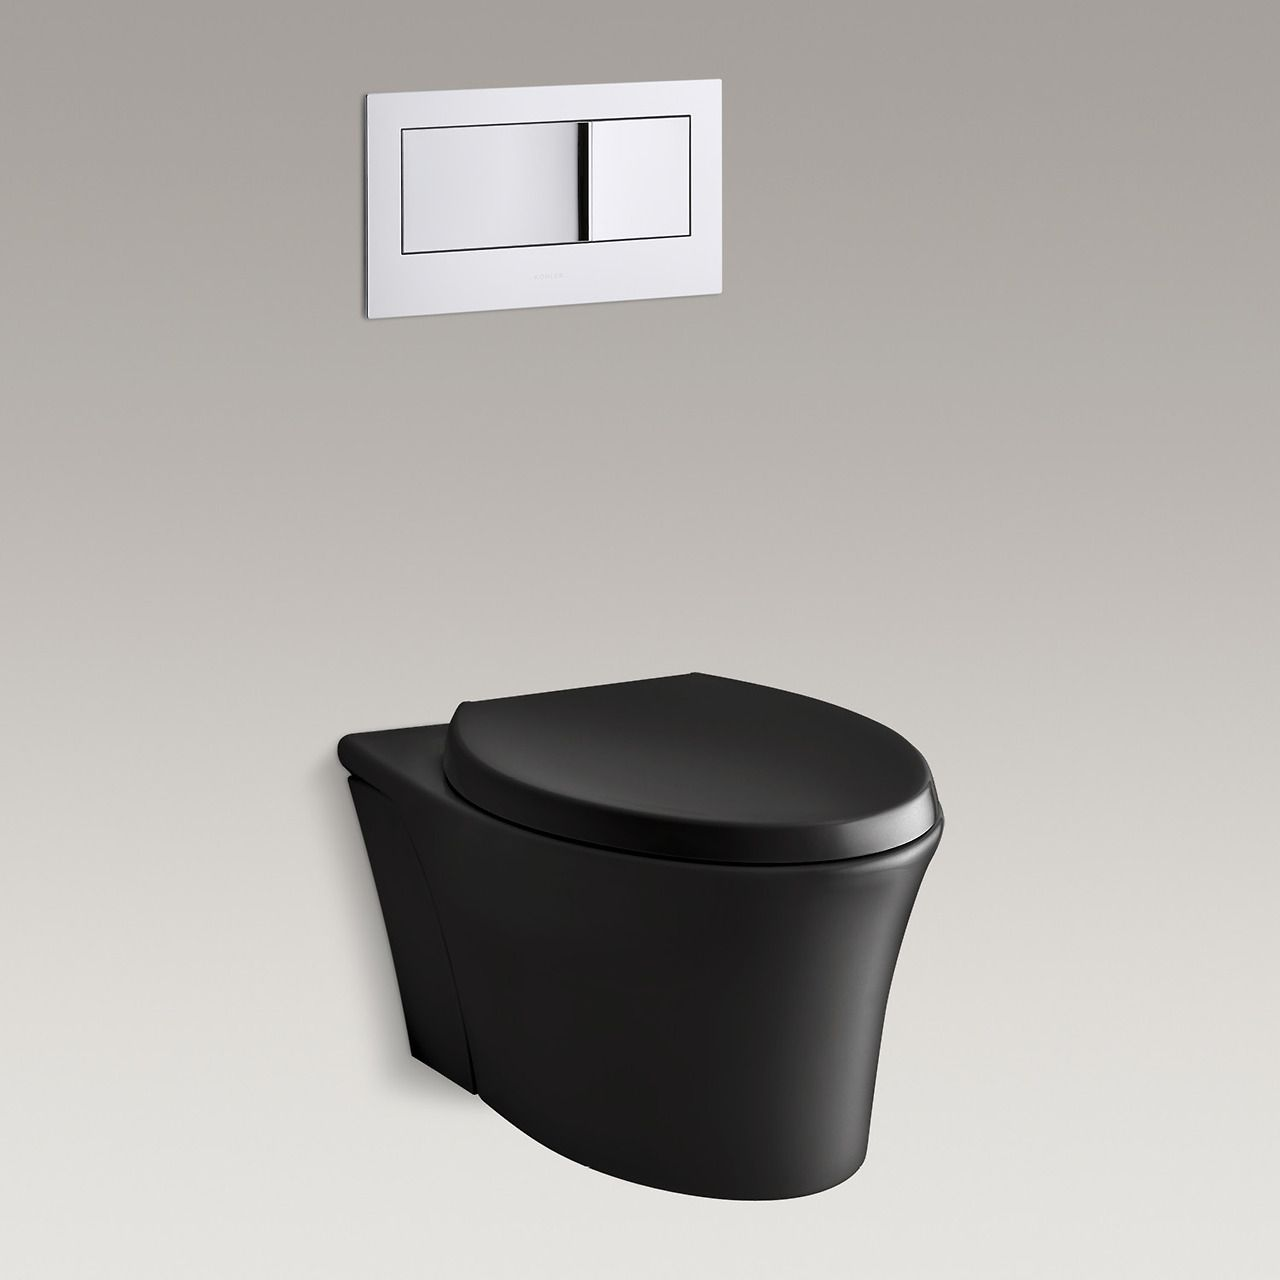 the spacesaving veil wallhung toilet with its concealed tank and